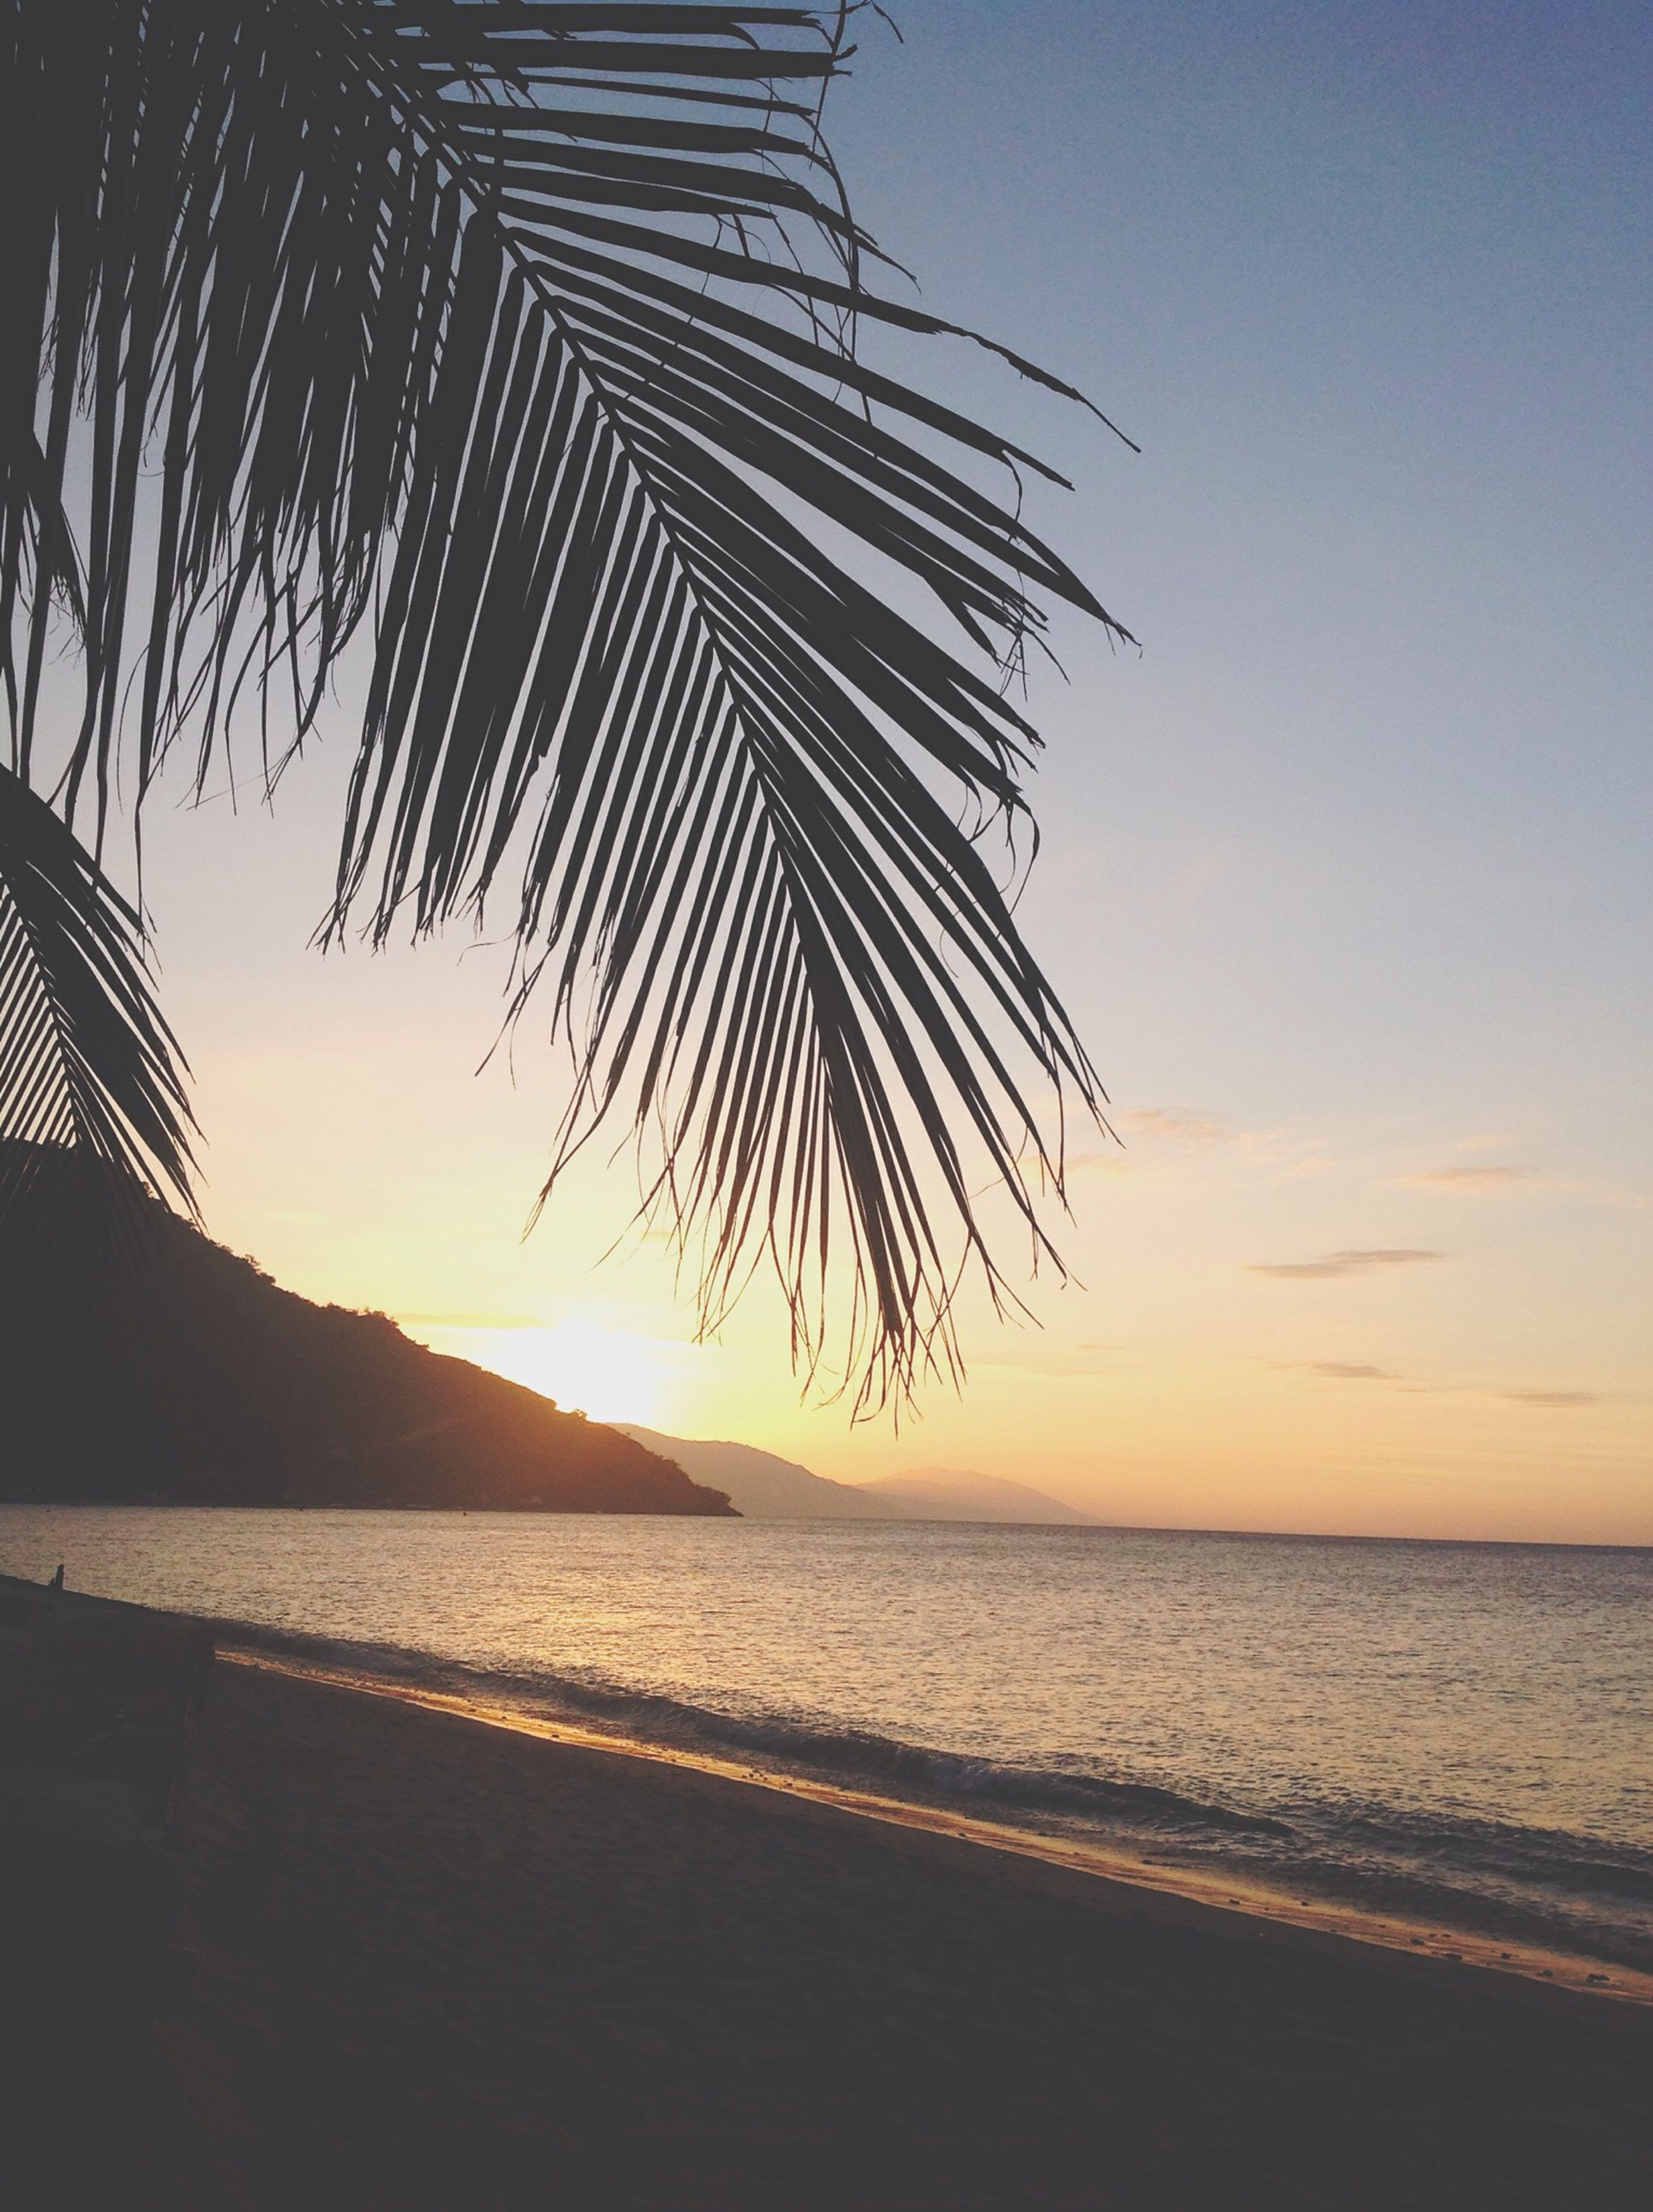 sea, palm tree, sunset, water, beach, tranquility, tranquil scene, scenics, beauty in nature, horizon over water, nature, silhouette, sky, tree, shore, idyllic, clear sky, sand, sunlight, growth